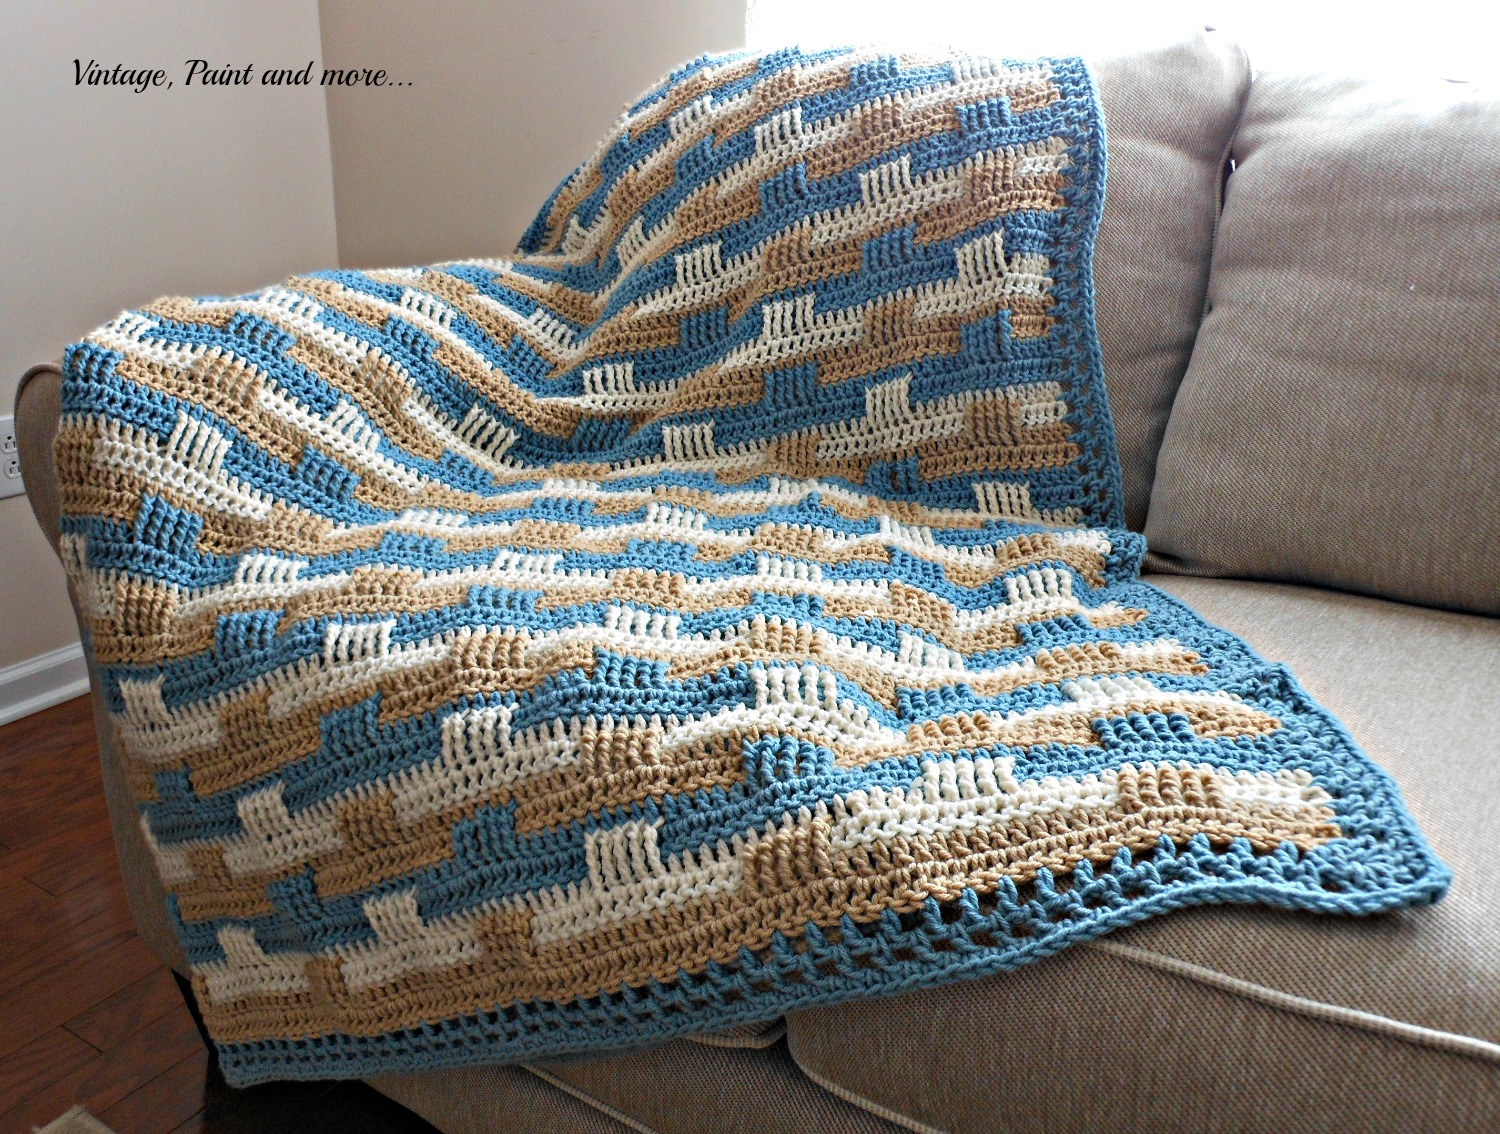 a crochet afghan done in a basket weave pattern for a coastal decor